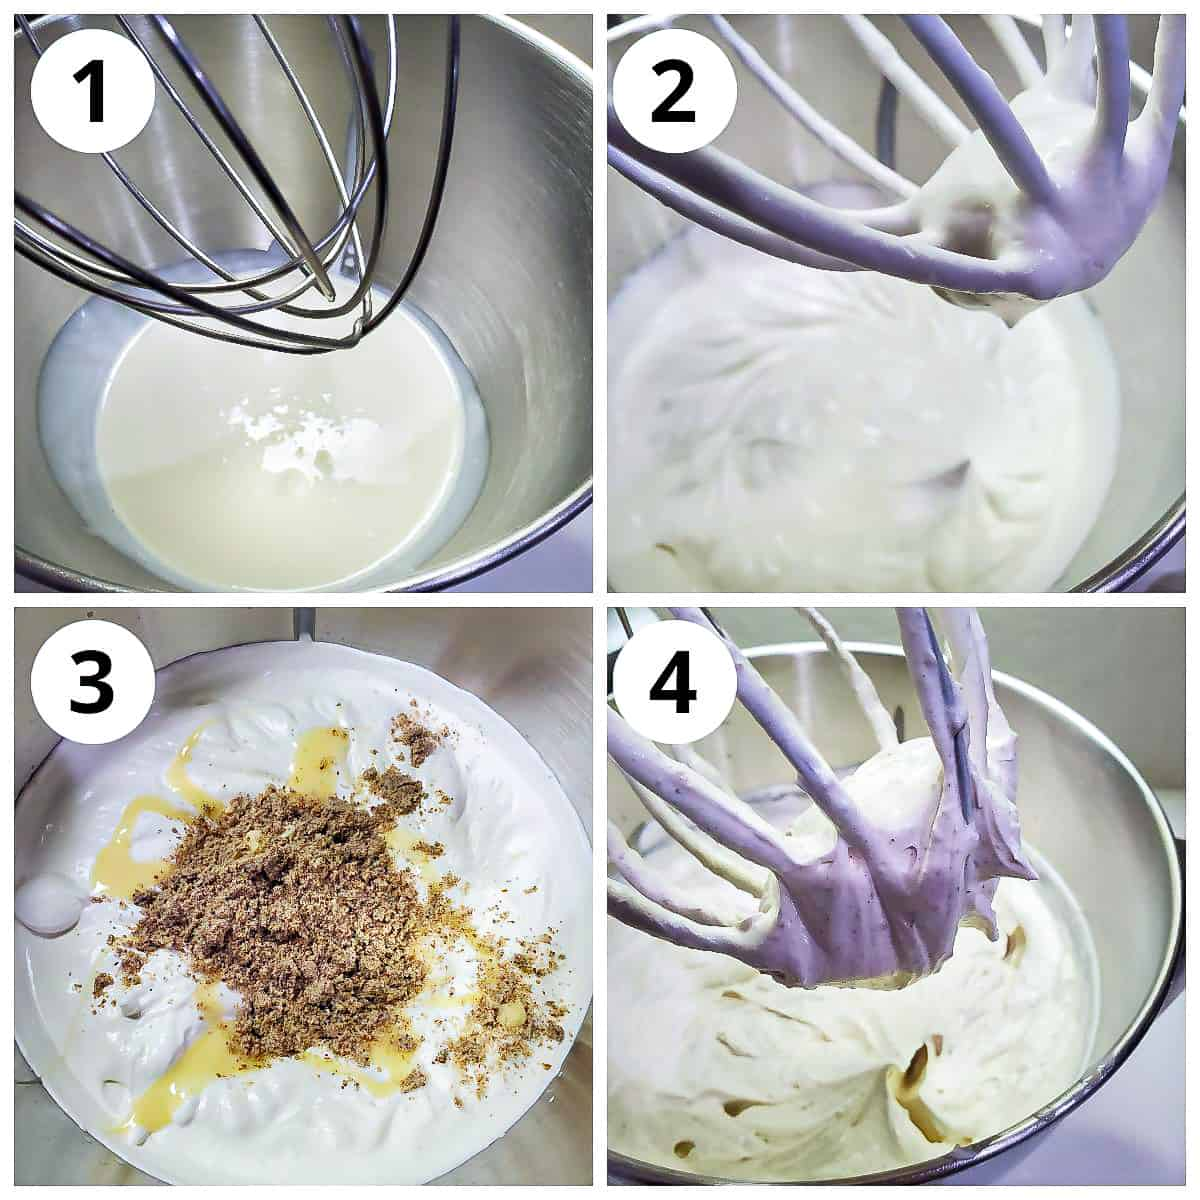 Steps to make thandai icecream base by whipping cream and adding condensed milk and thandai masala